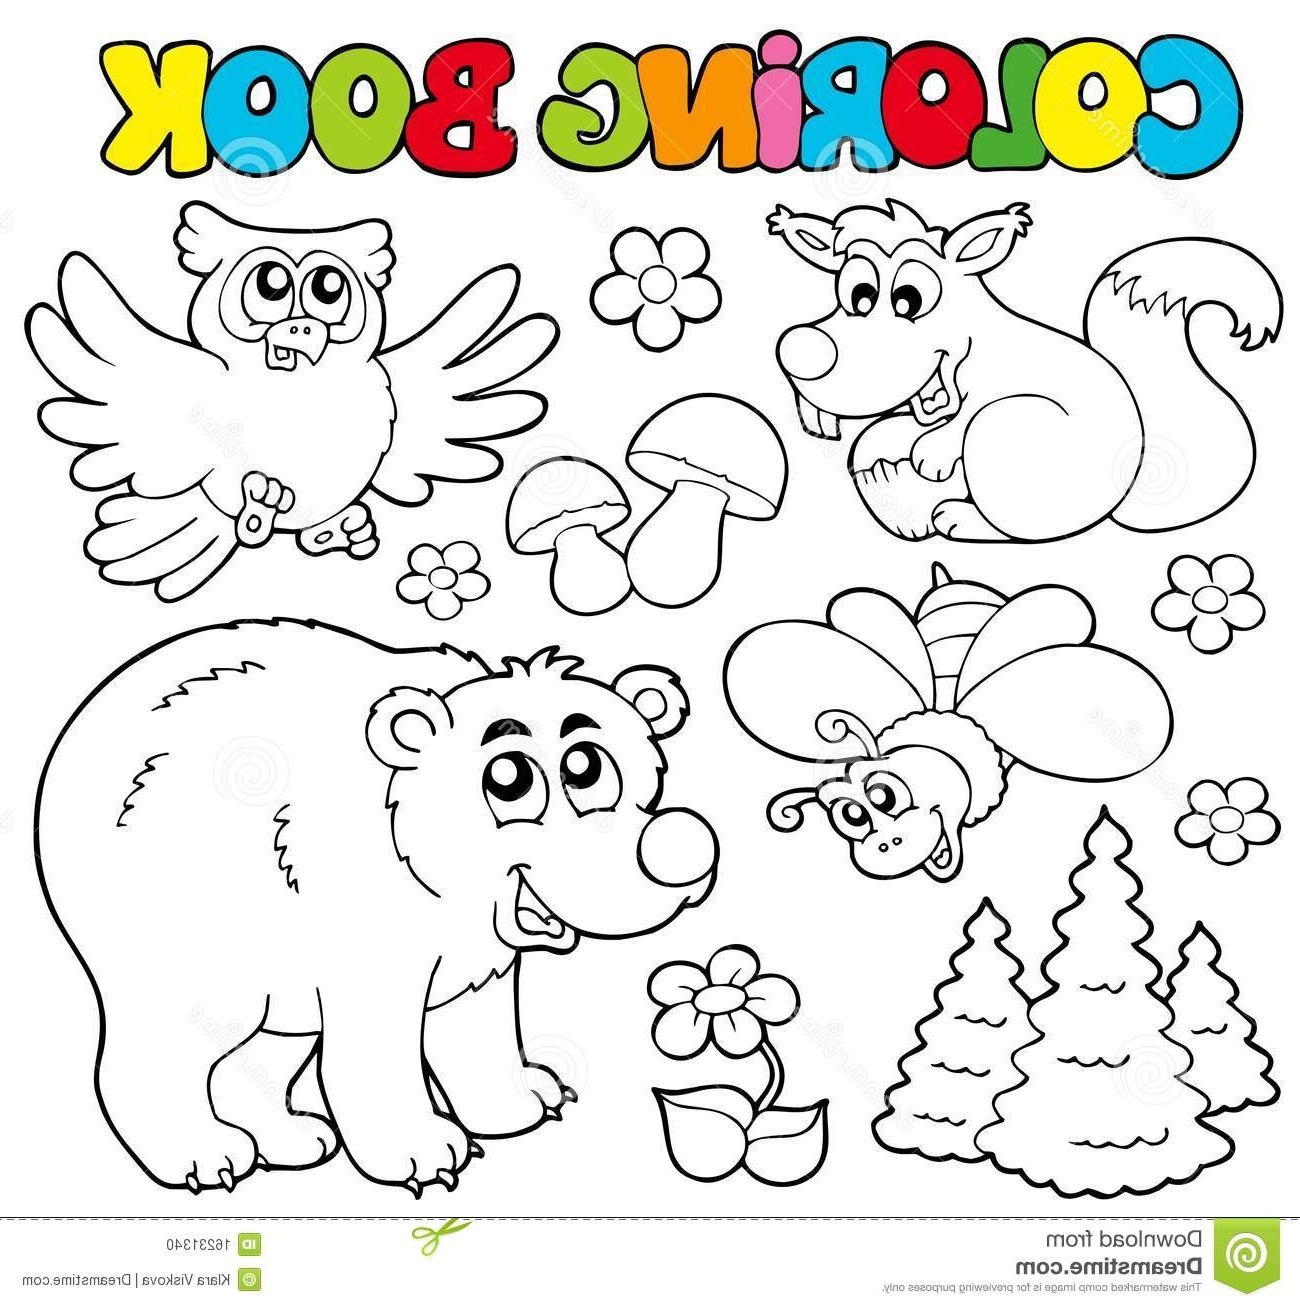 Forest Animals Coloring Pages - Coloring Pages forest Animals Printable Kids Coloring